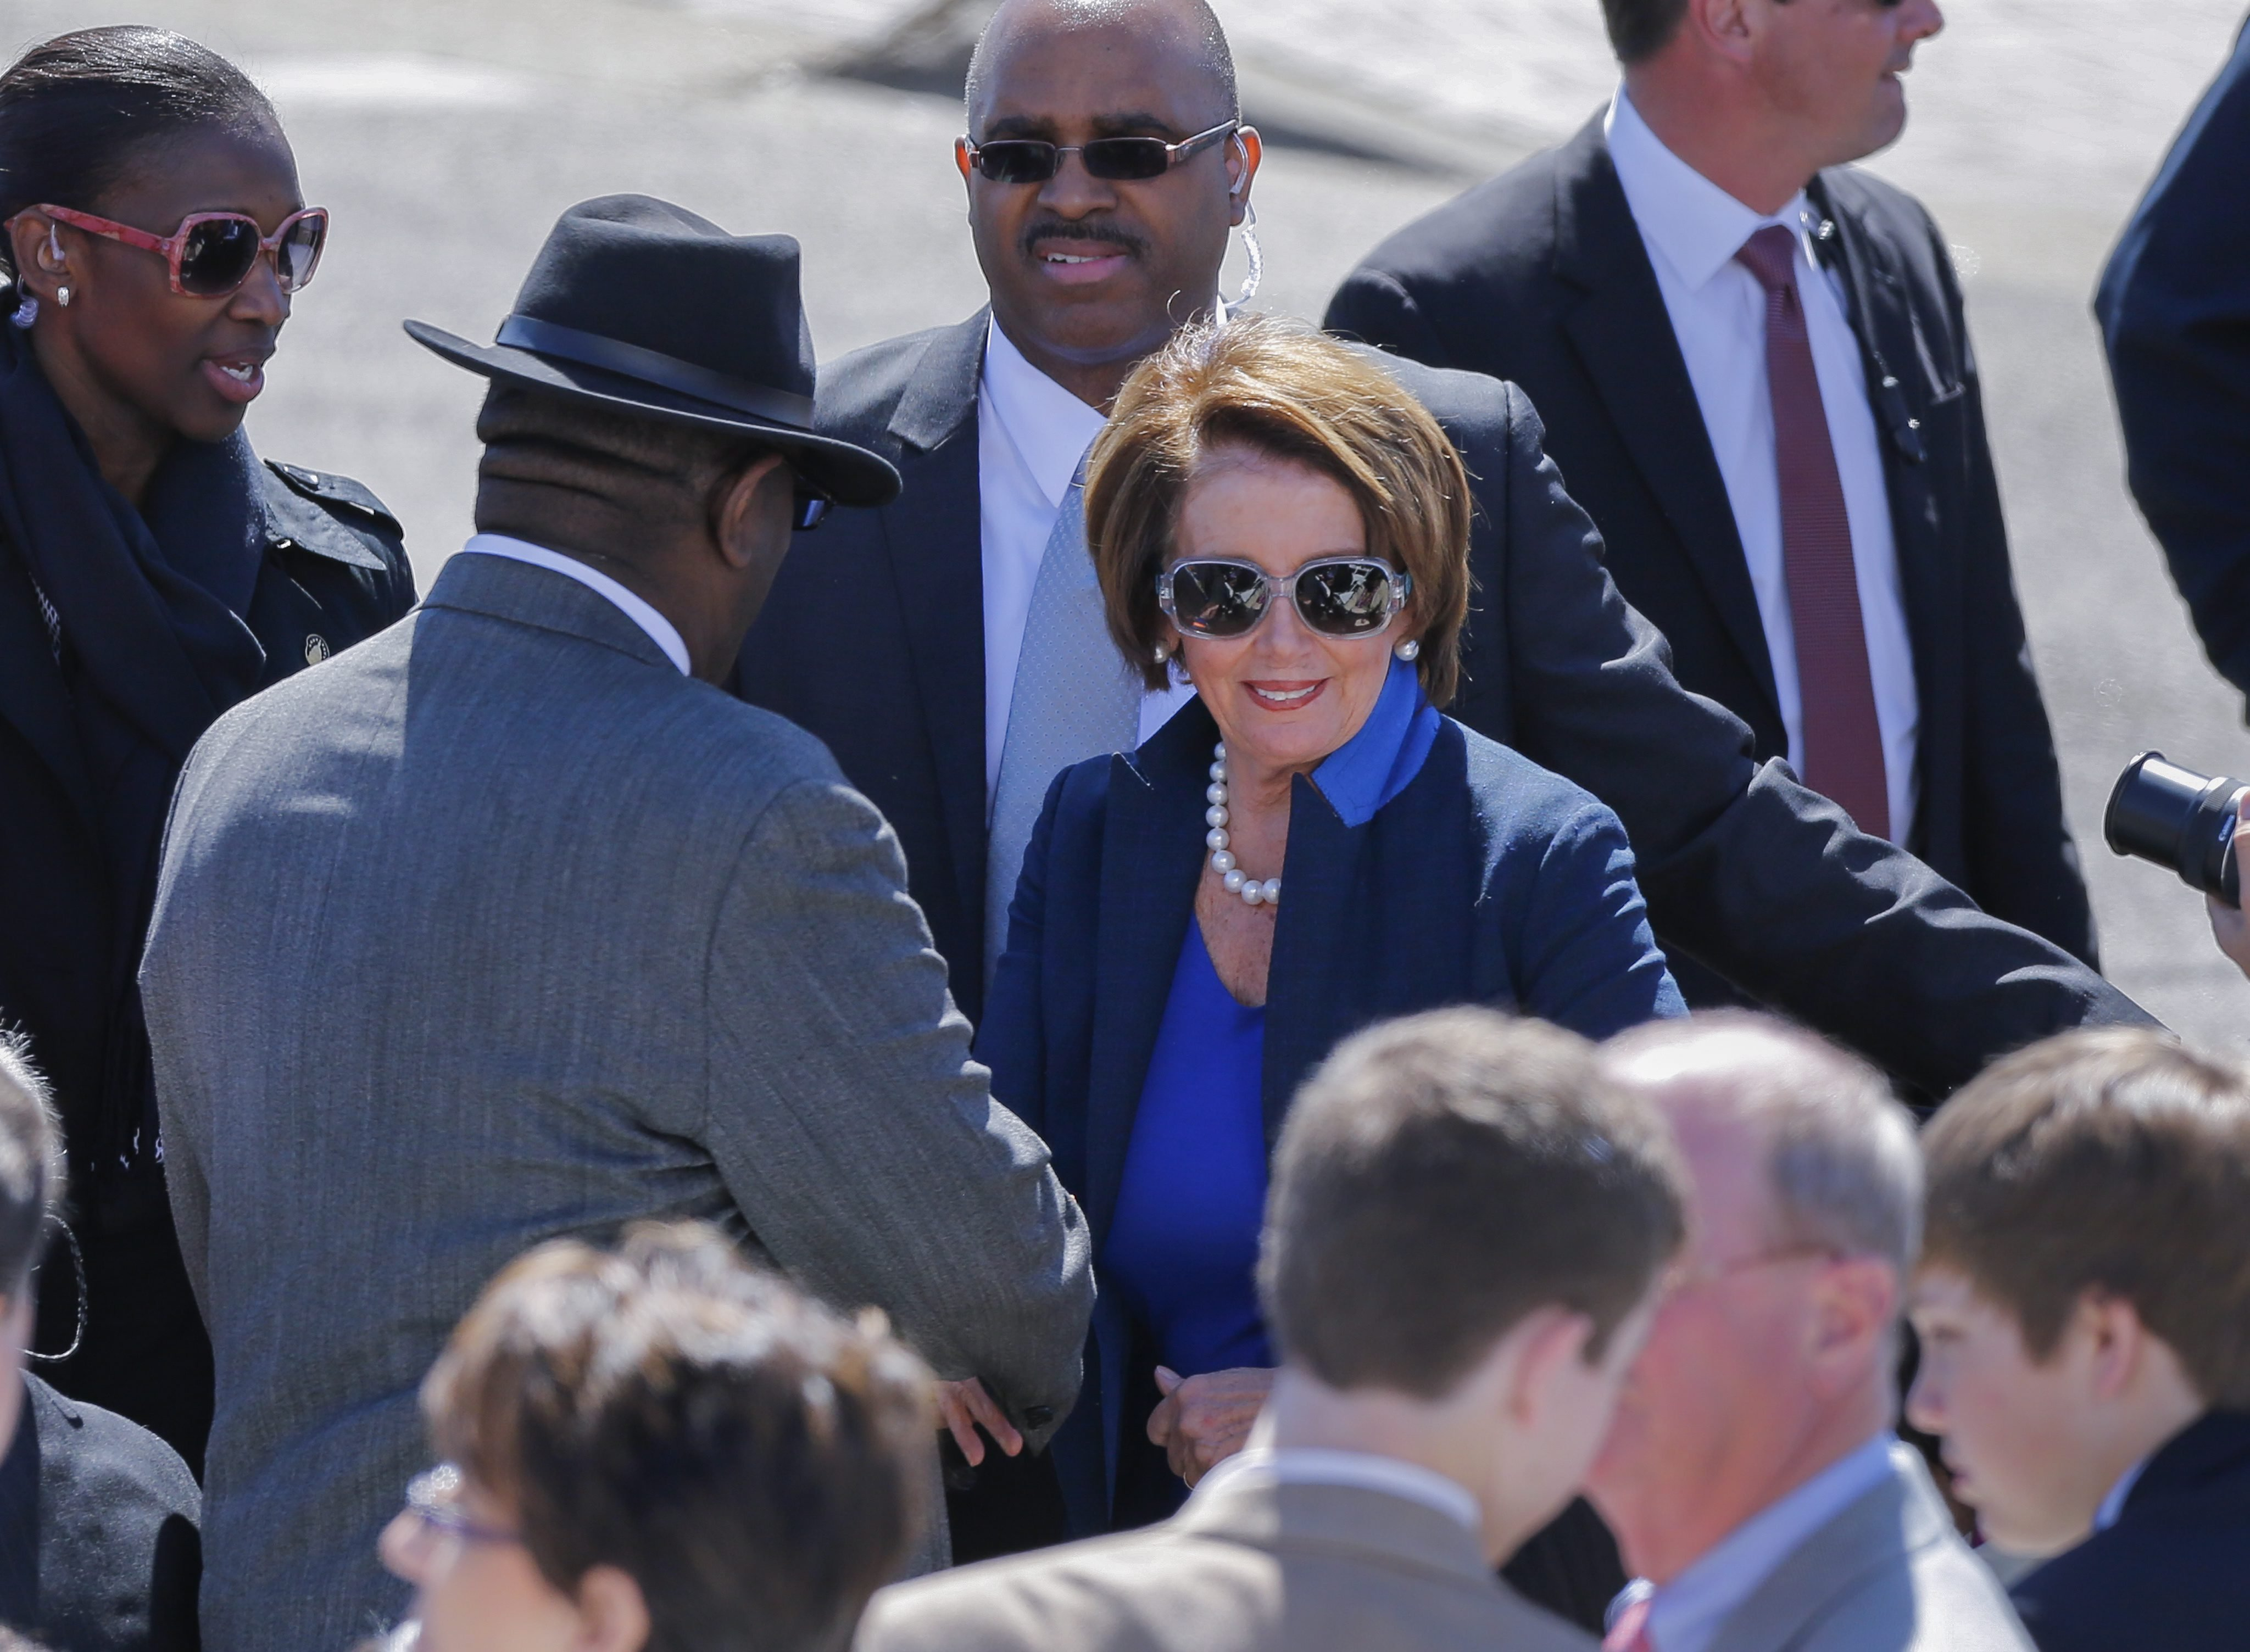 US House of Representative Minority Leader Nancy Pelosi arrives for activities commemorating the 50th anniversary of the Bloody Sunday crossing of the Edmund Pettus Bridge in Selma, Ala. on March 7, 2015.